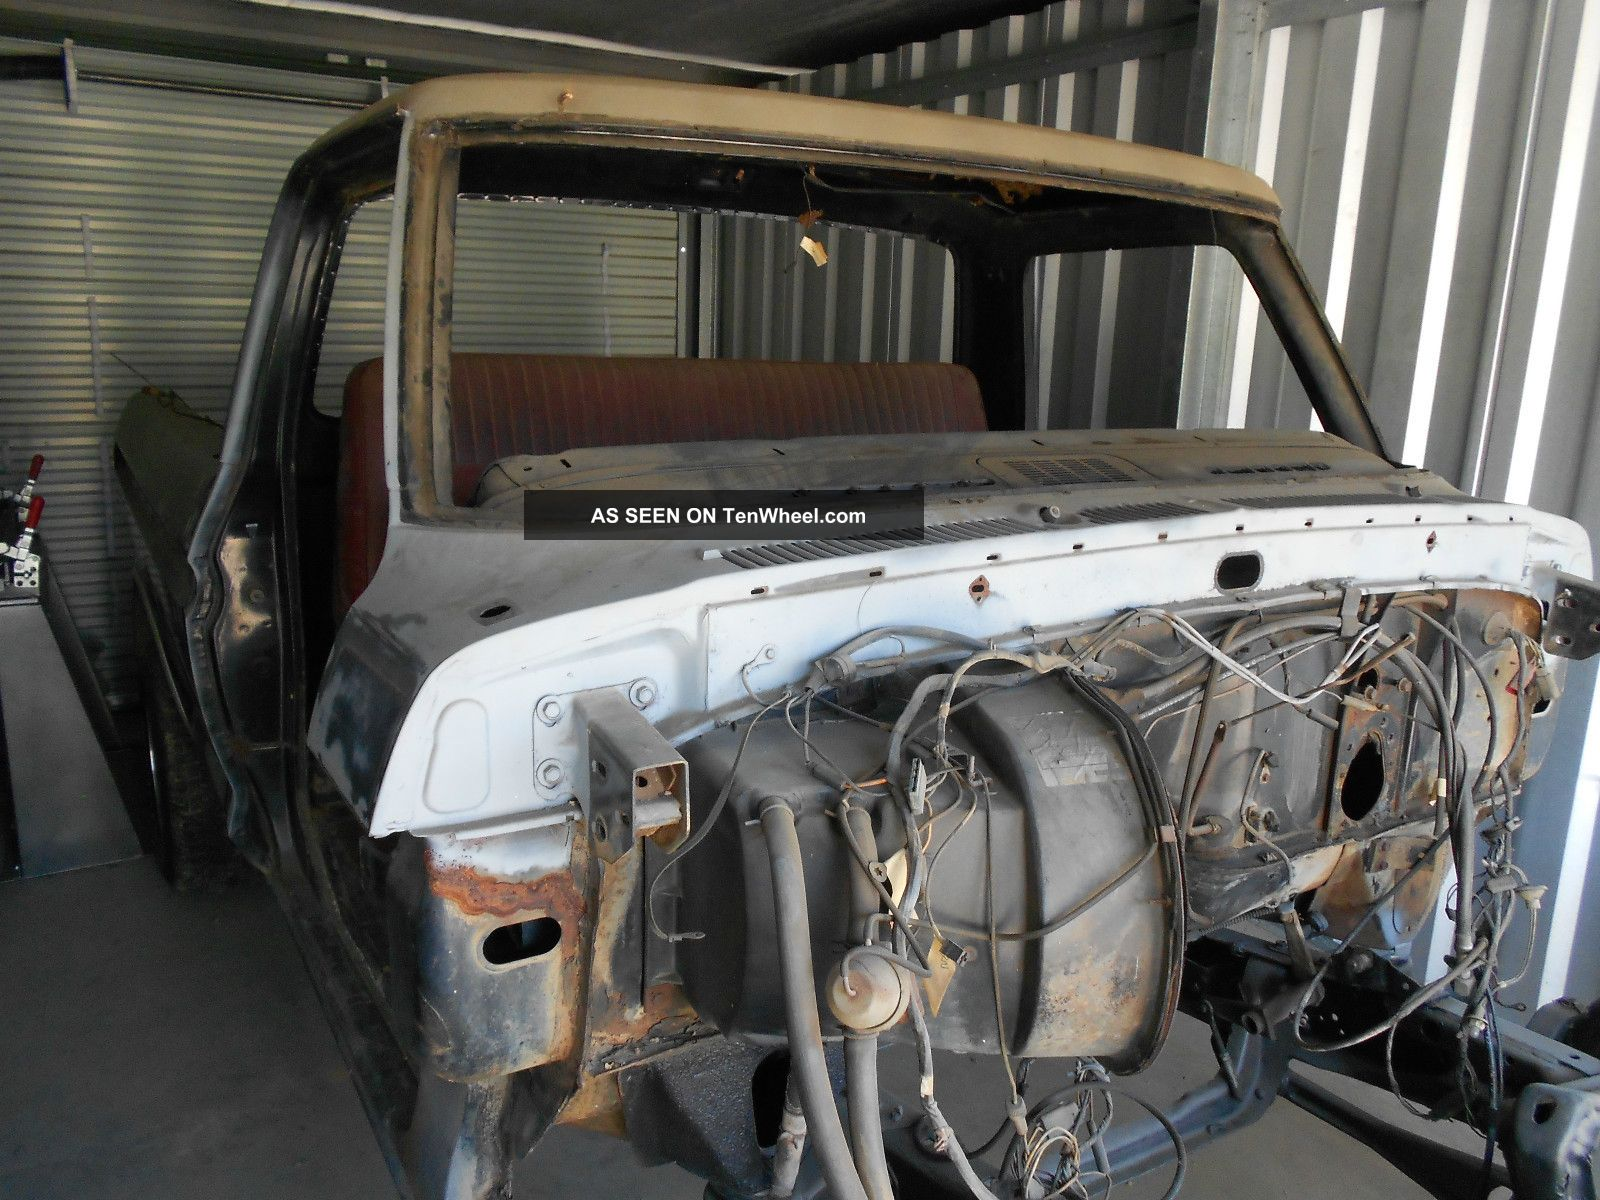 1973 Ford F100 Ranger Xlt Short Bed Disassembled For Restoration F-100 photo